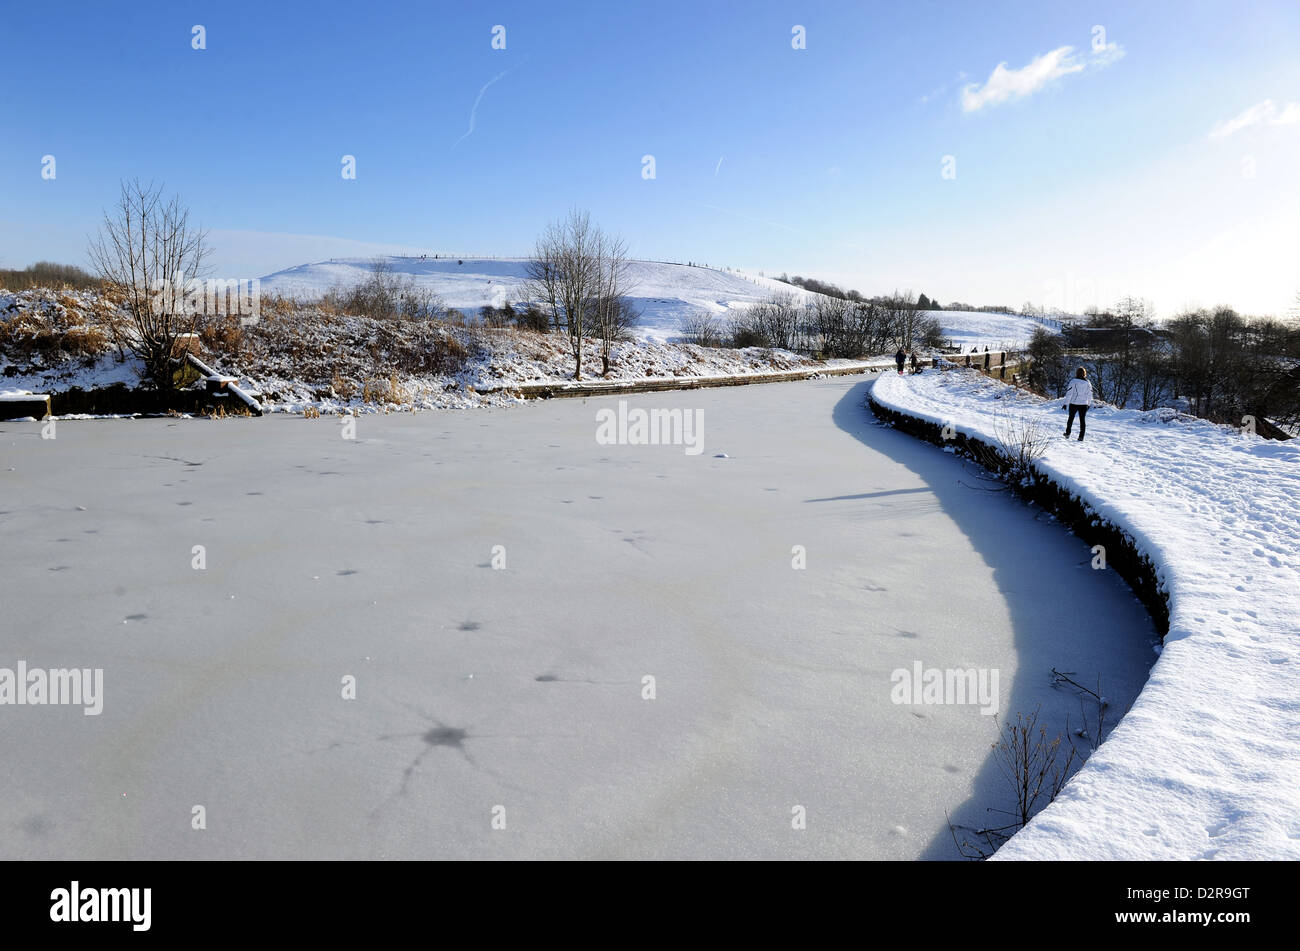 Winter snow scene next to the frozen Manchester, Bolton and Bury Canal at Little Lever, Bolton, Lancashire, England. - Stock Image